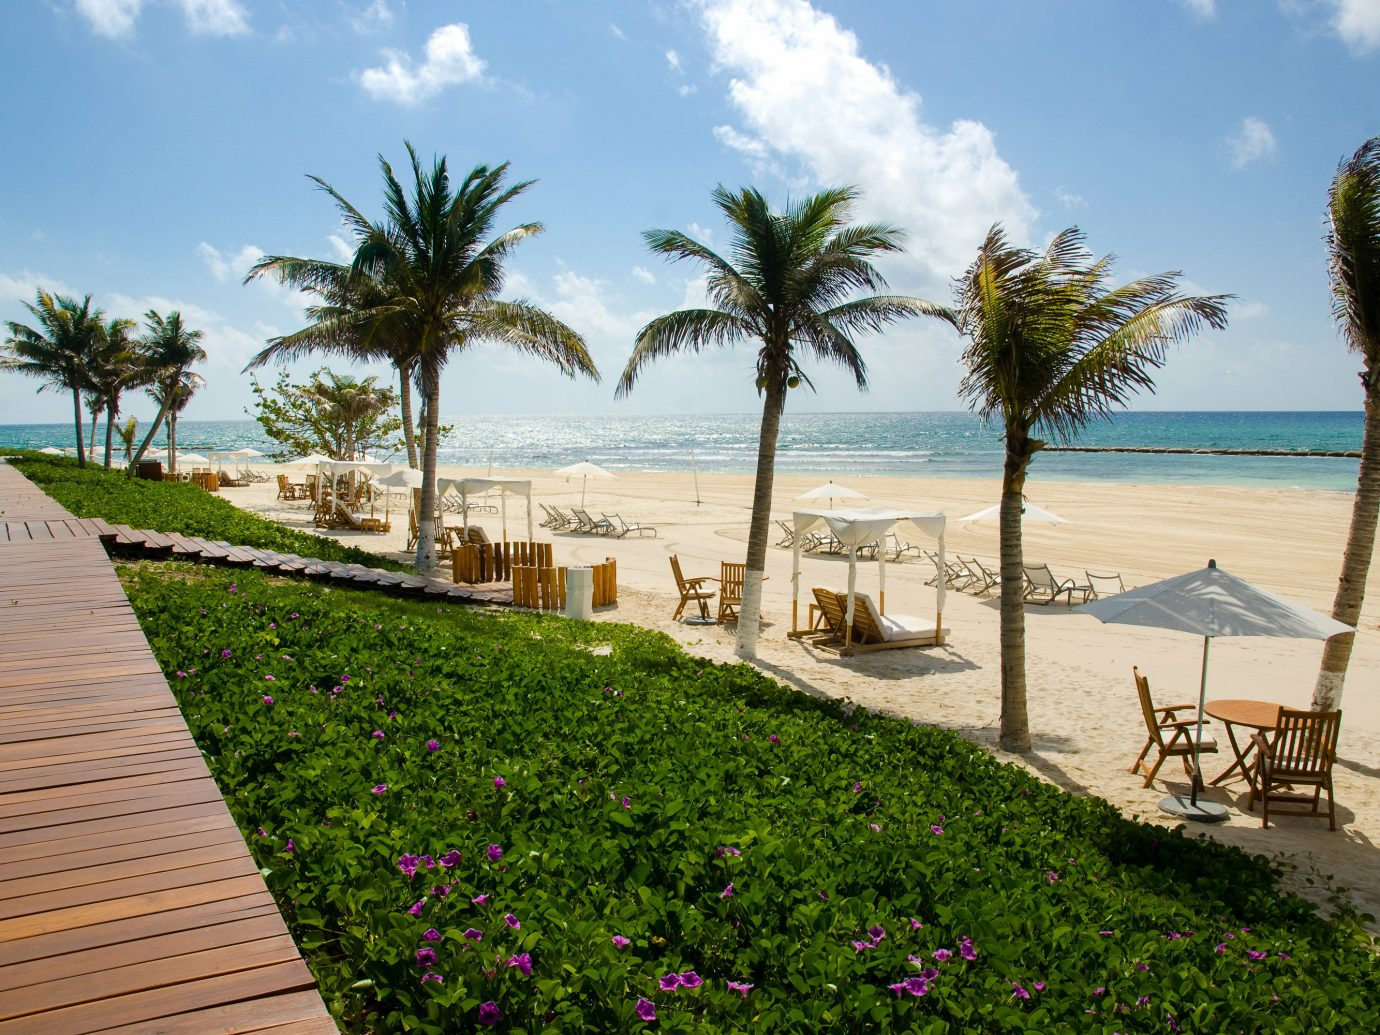 All-inclusive All-Inclusive Resorts Mexico Riviera Maya, Mexico Resort palm tree arecales property tree sky Sea Beach real estate vacation estate walkway tropics leisure plant tourism Villa boardwalk